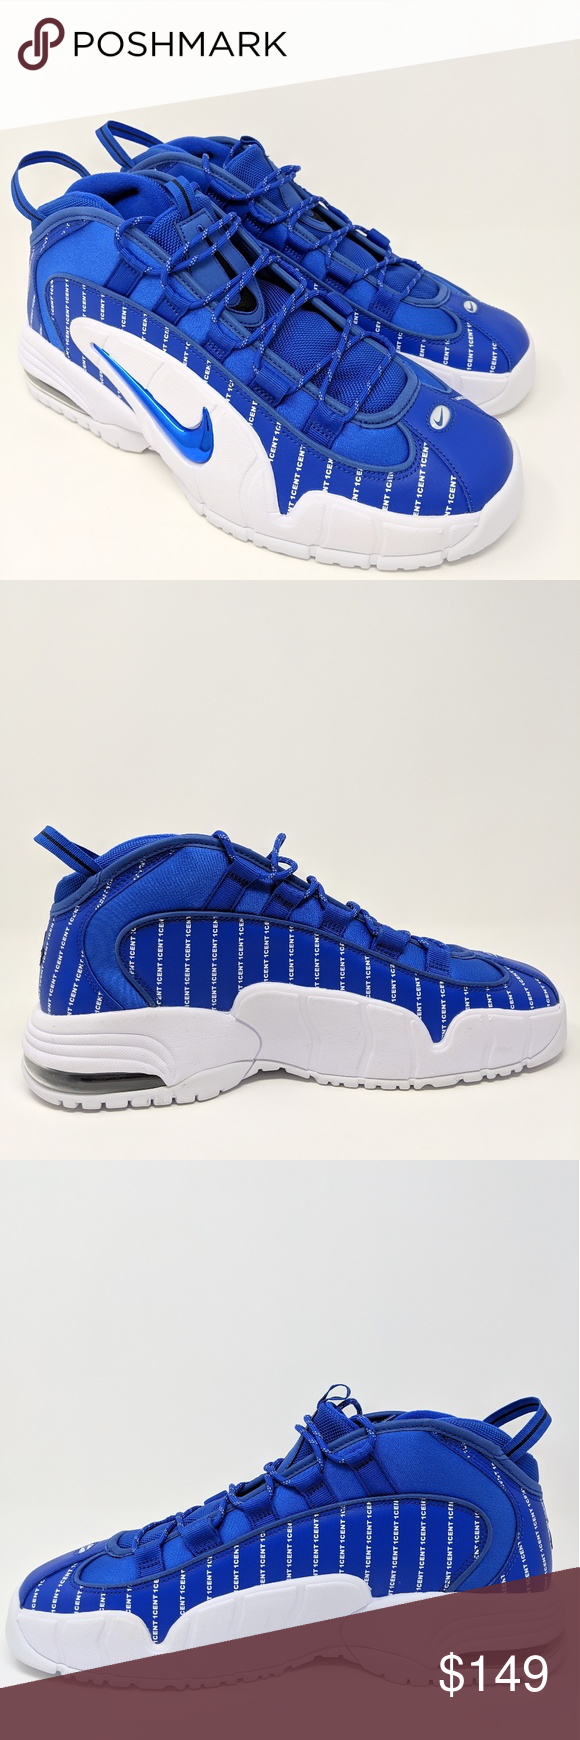 best service 55d6c 99149 Nike Air Max Penny 1 Royal Blue Hardaway Men 11.5 Nike Air Max Penny 1 royal